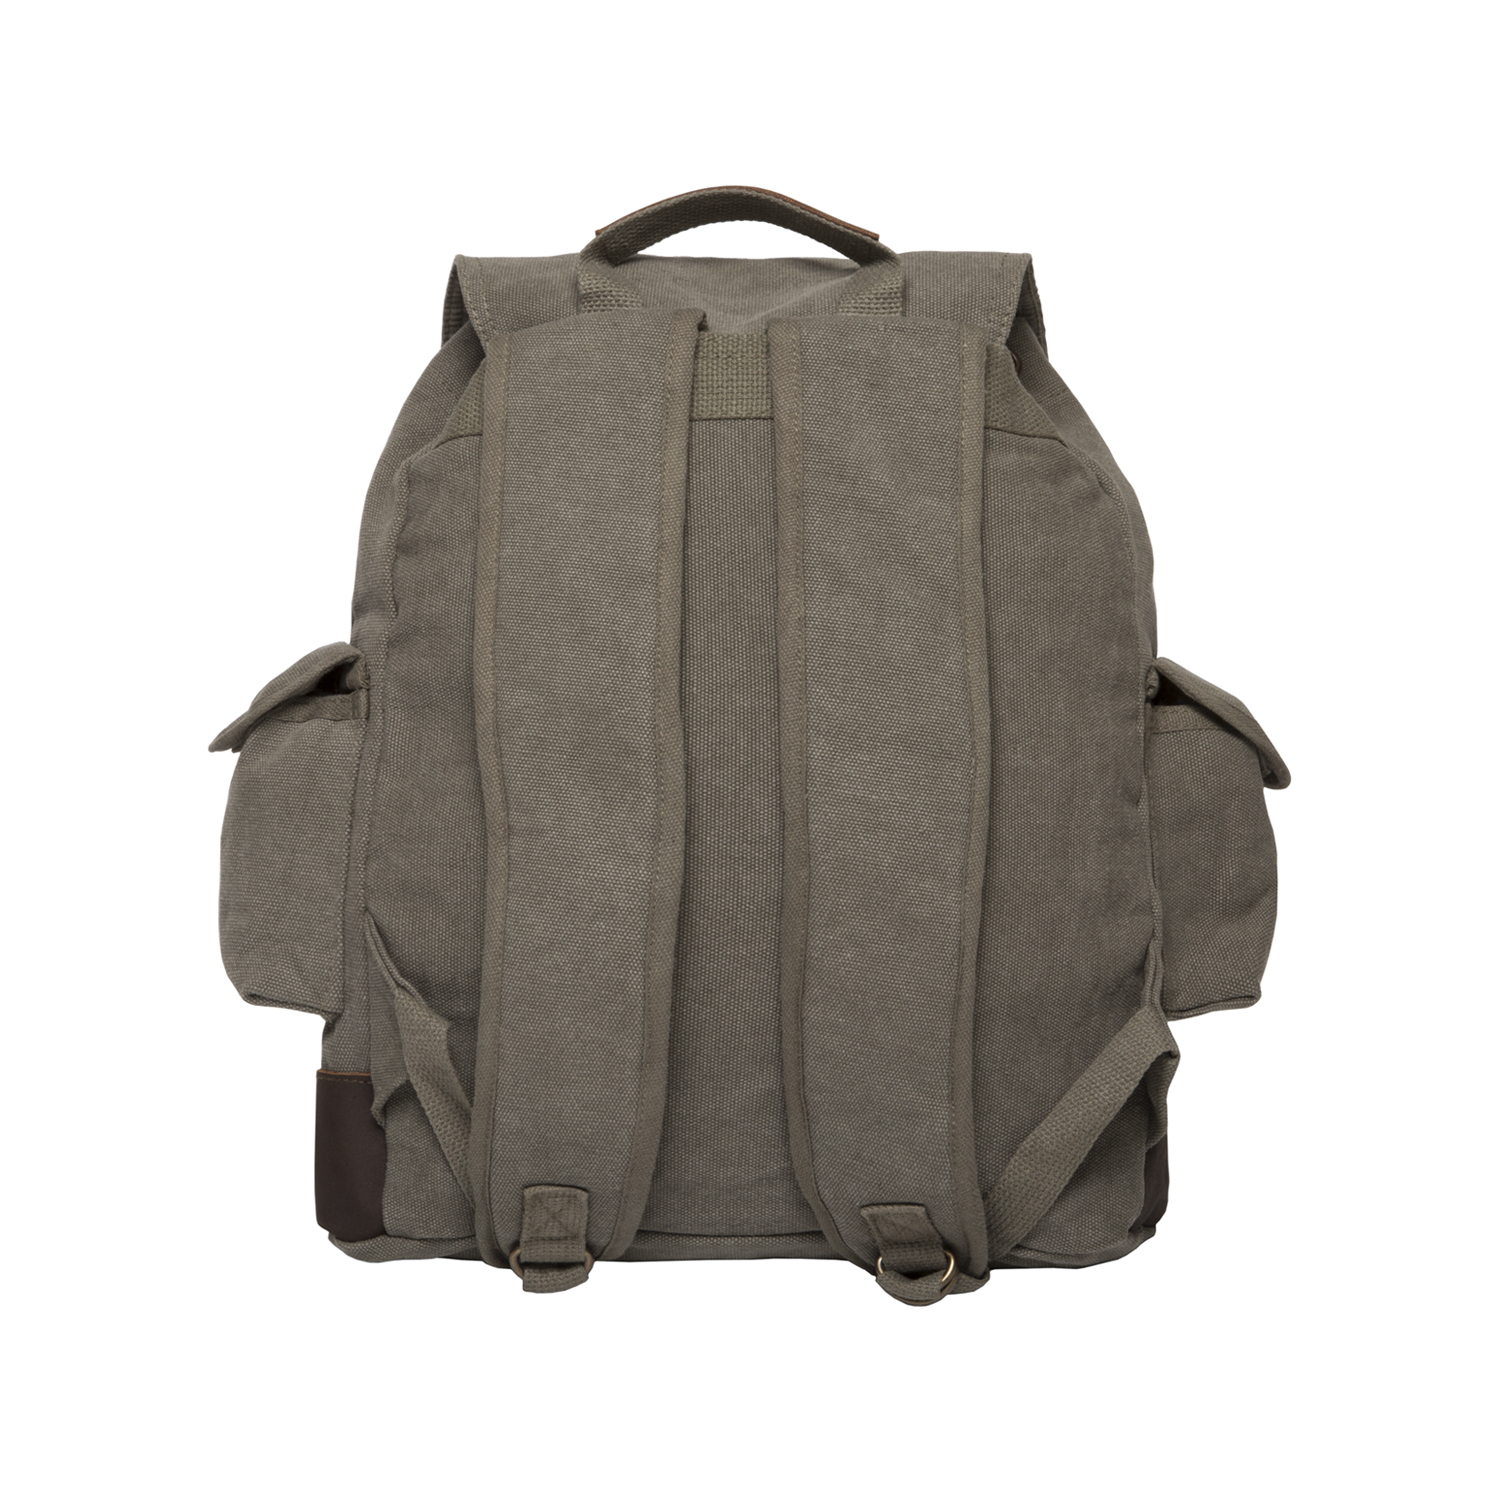 bf7900deae79 Jeep An American Tradition Vintage Canvas Rucksack Backpack with Leather  Straps